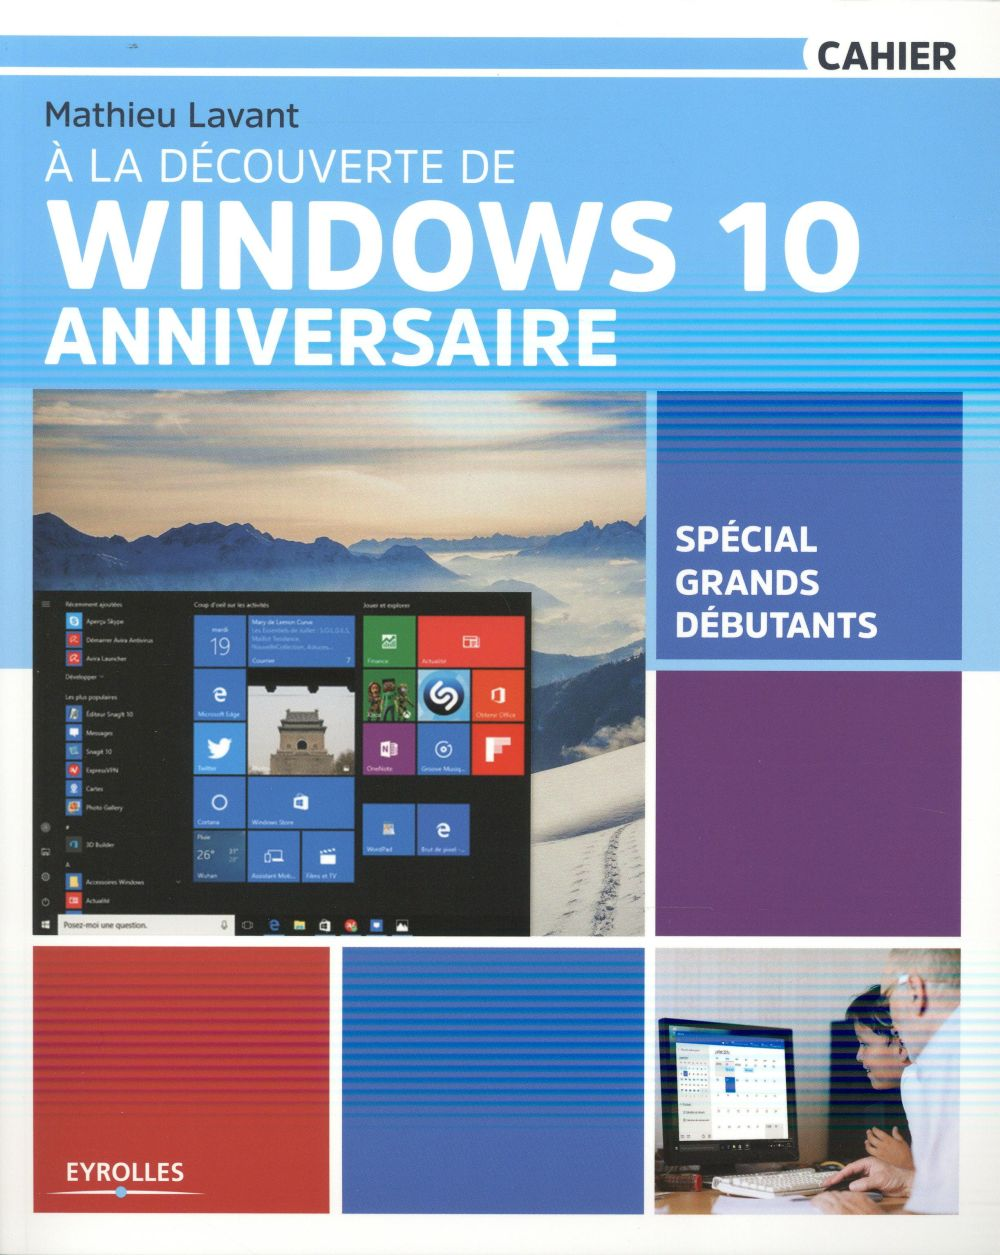 A LA DECOUVERTE DE WINDOWS 10 ANNIVERSAIRE